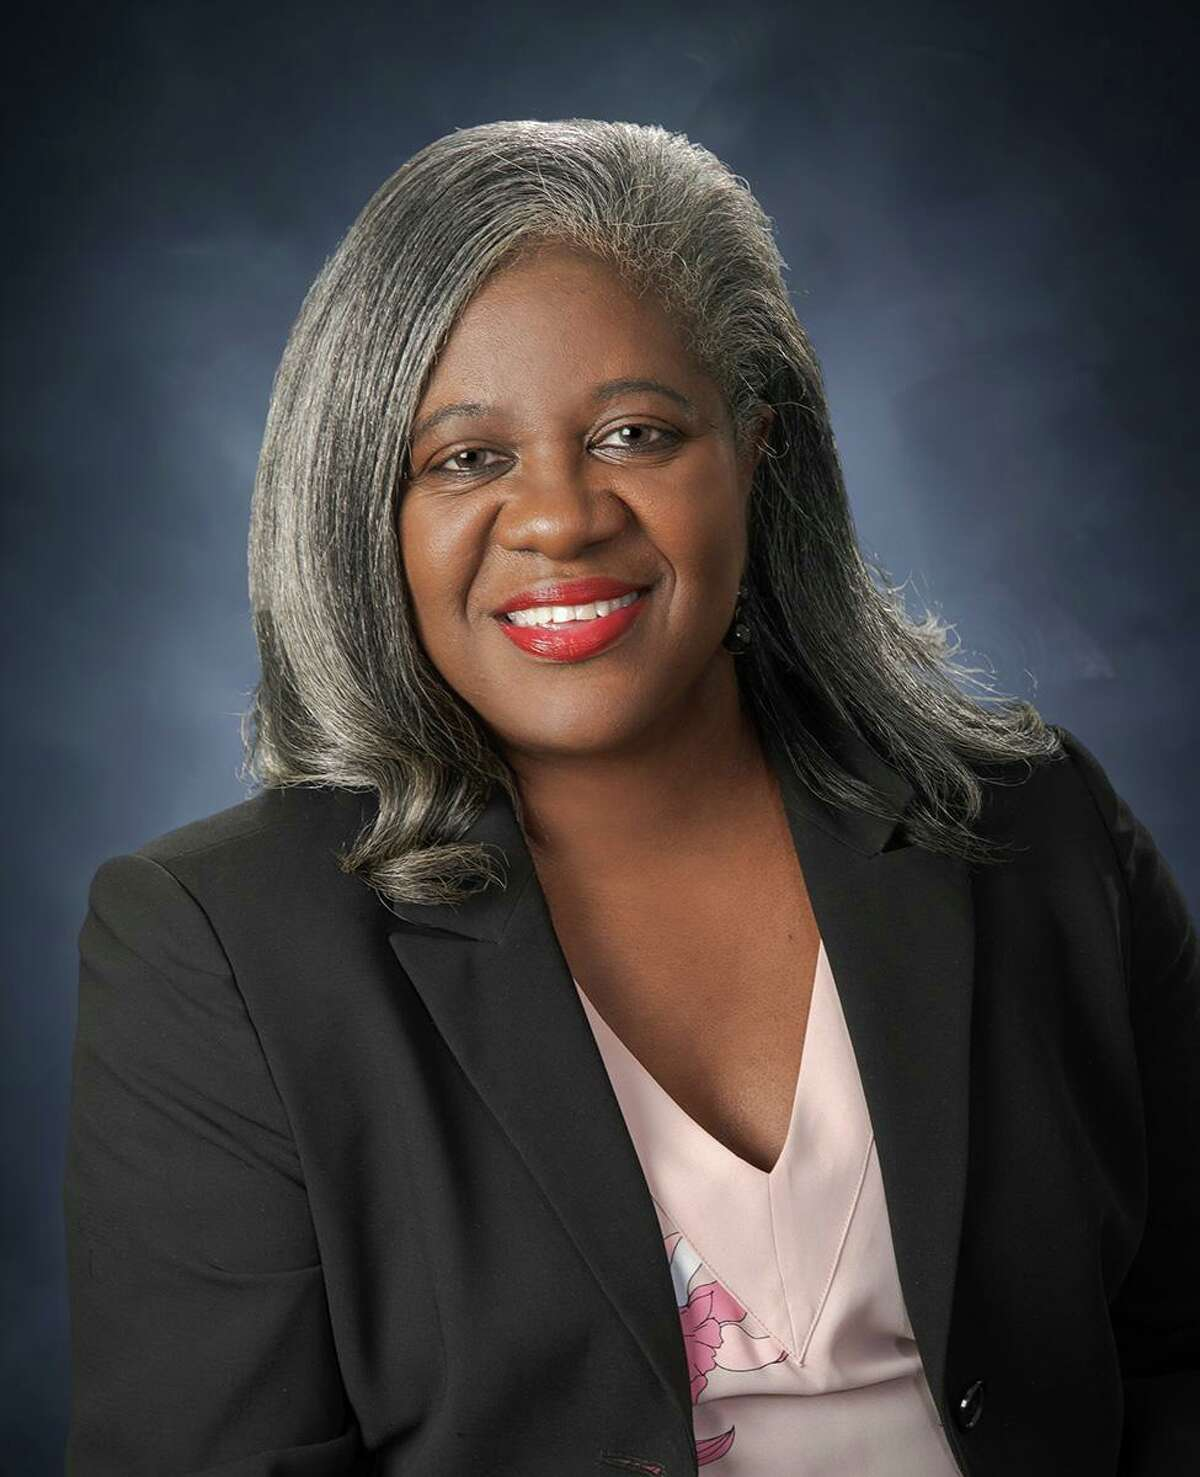 Nassau Bay Assistant City Manager Mary Chambers will compete in the third annual Dancing with the Stars-Bay Area Aug. 28 at South Shore Harbor Resort and Conference Center. Proceeds benefit the Bay Area Alliance for Youth and Families.